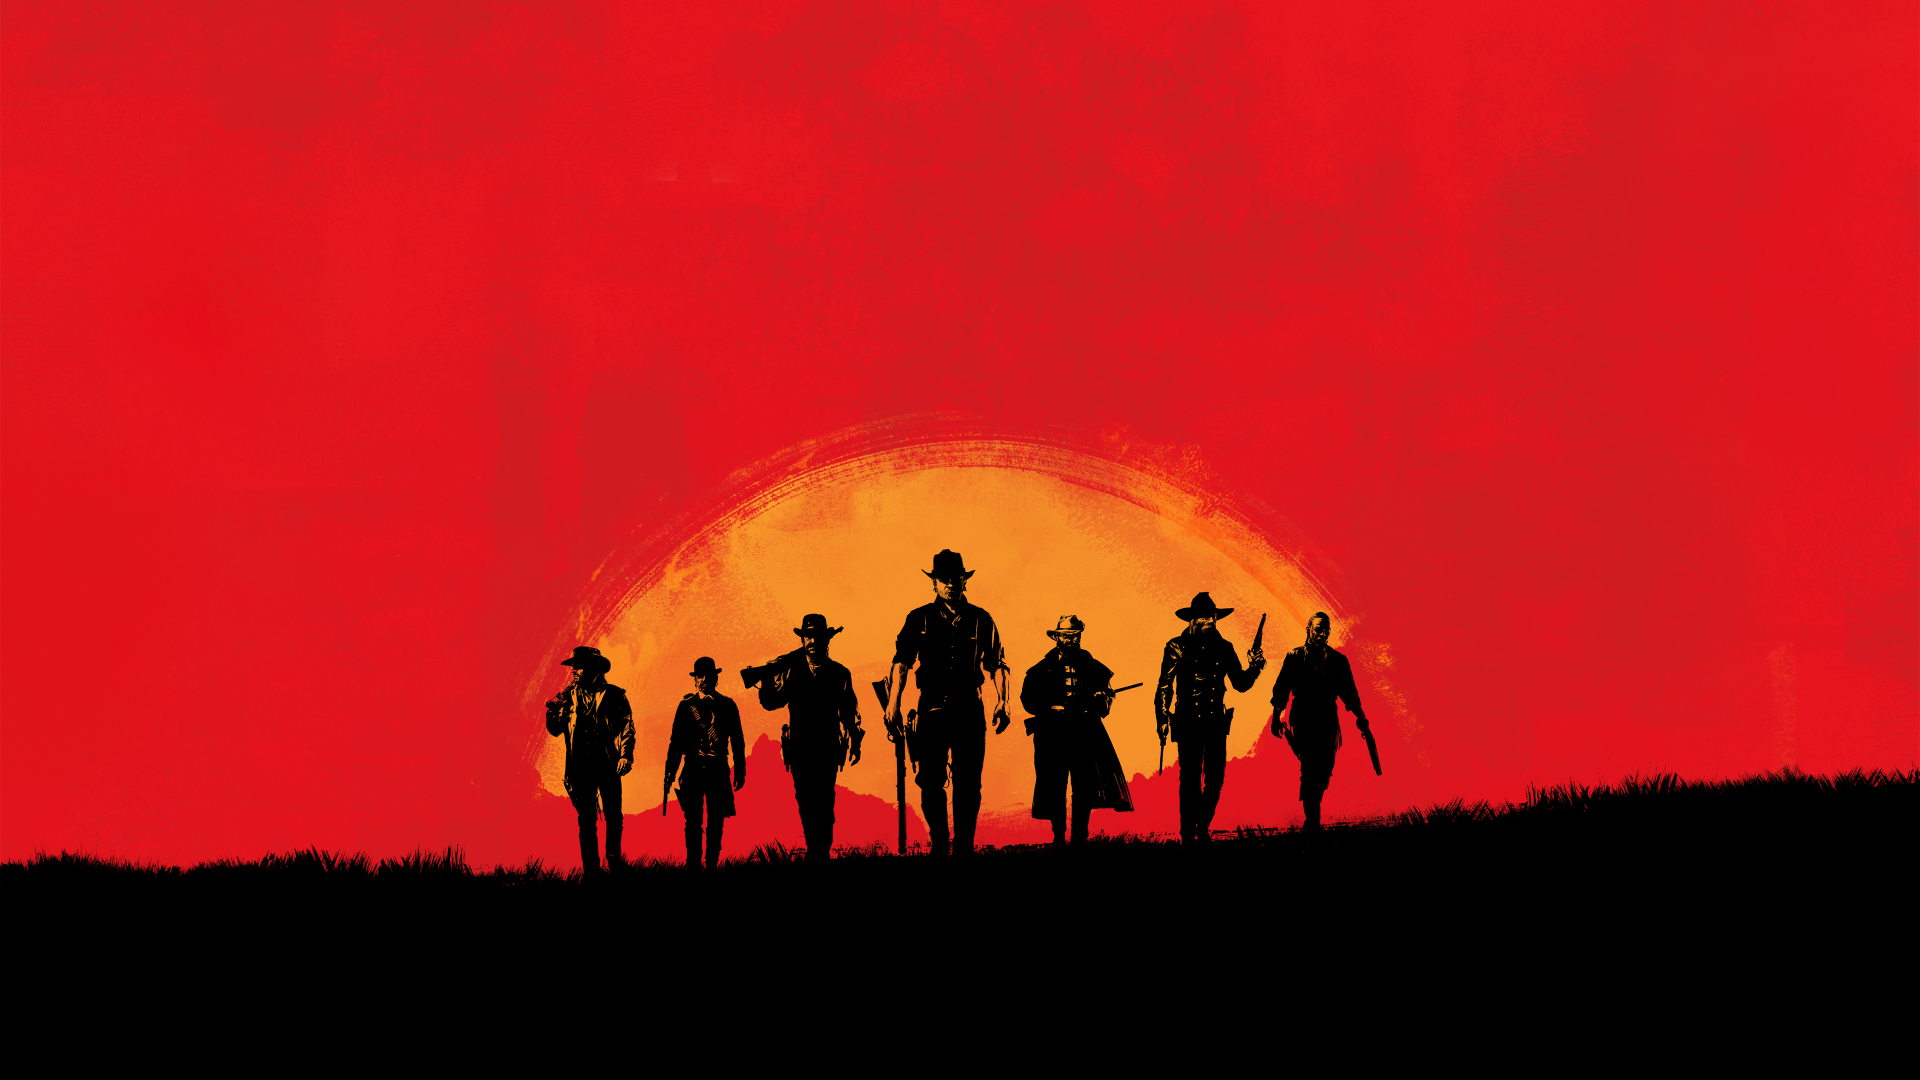 3840x2160 Red Dead Redemption 2 Wallpaper Background Image View Download Comment And Rate Wallpaper Red Dead Redemption Background Images Red Dead Online